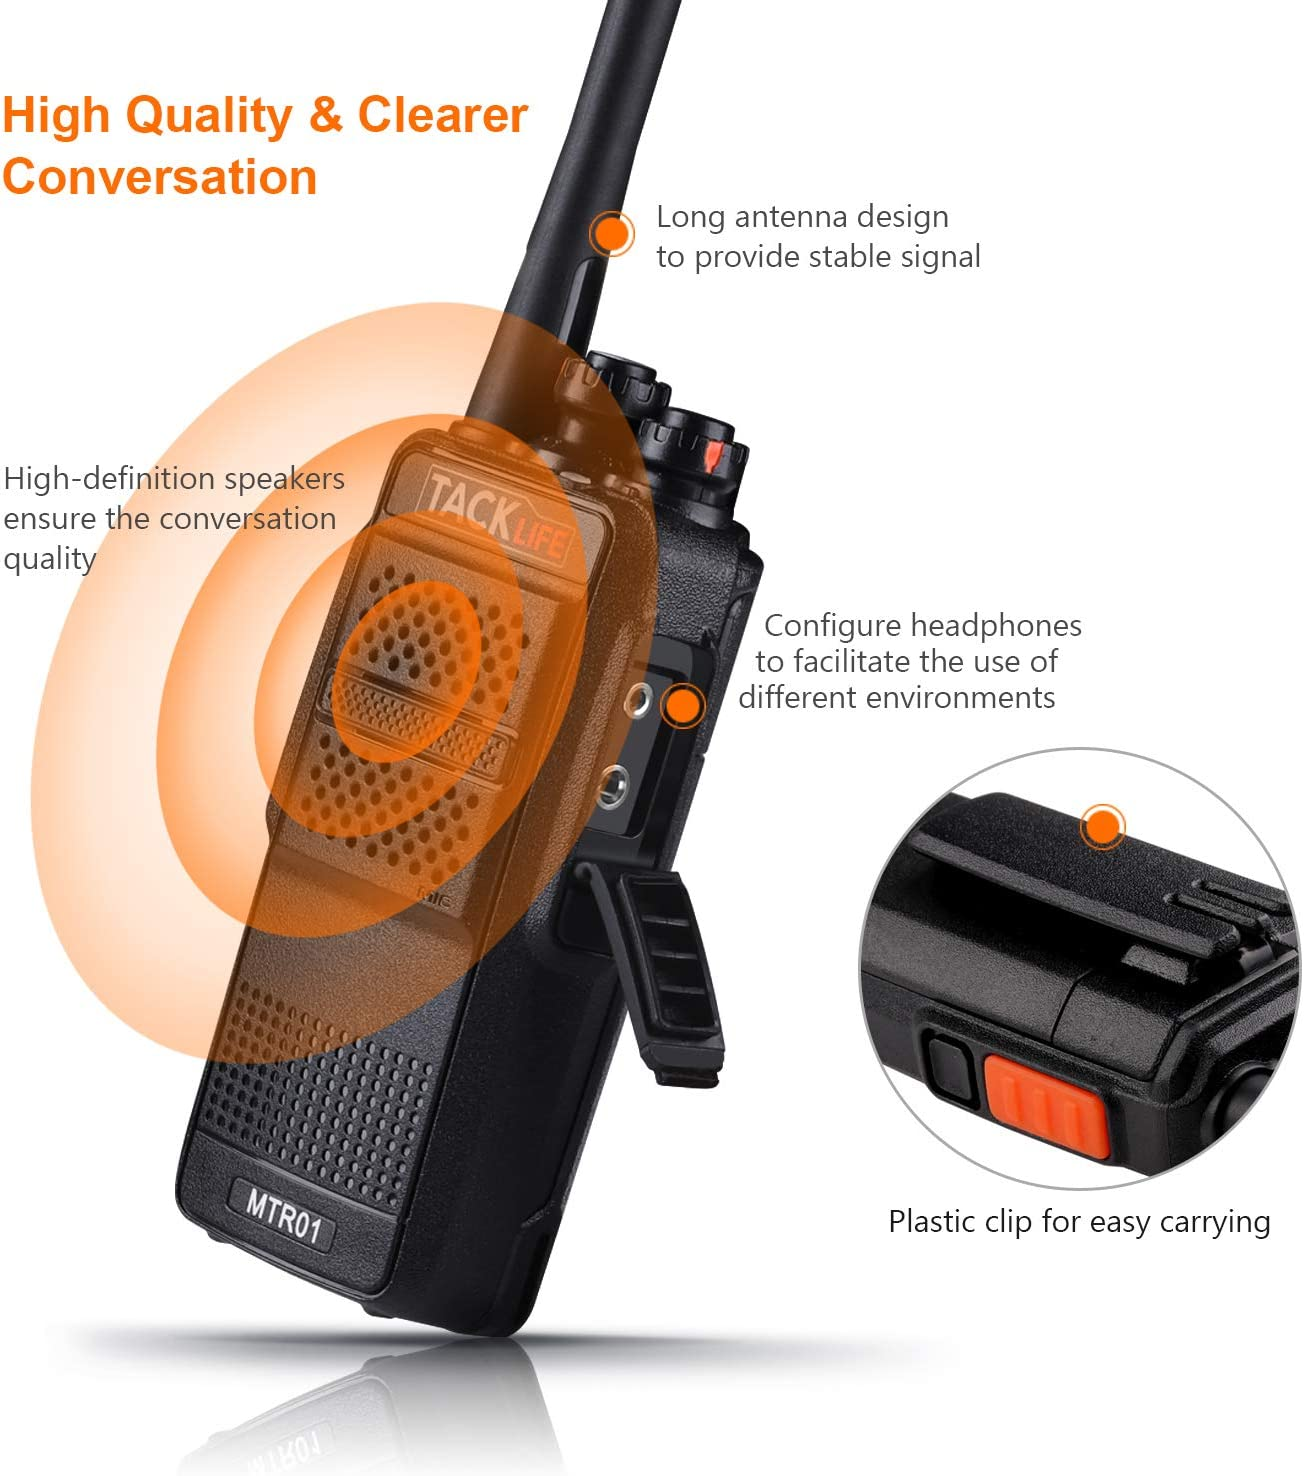 Li-ion Battery Charging Professional Long Range Two-Way Radios 2-Pack with Earpiece 16 Channels Walkie Talkies Rechargeable UHF 400-470MHz Clip Included MTR01 Charger